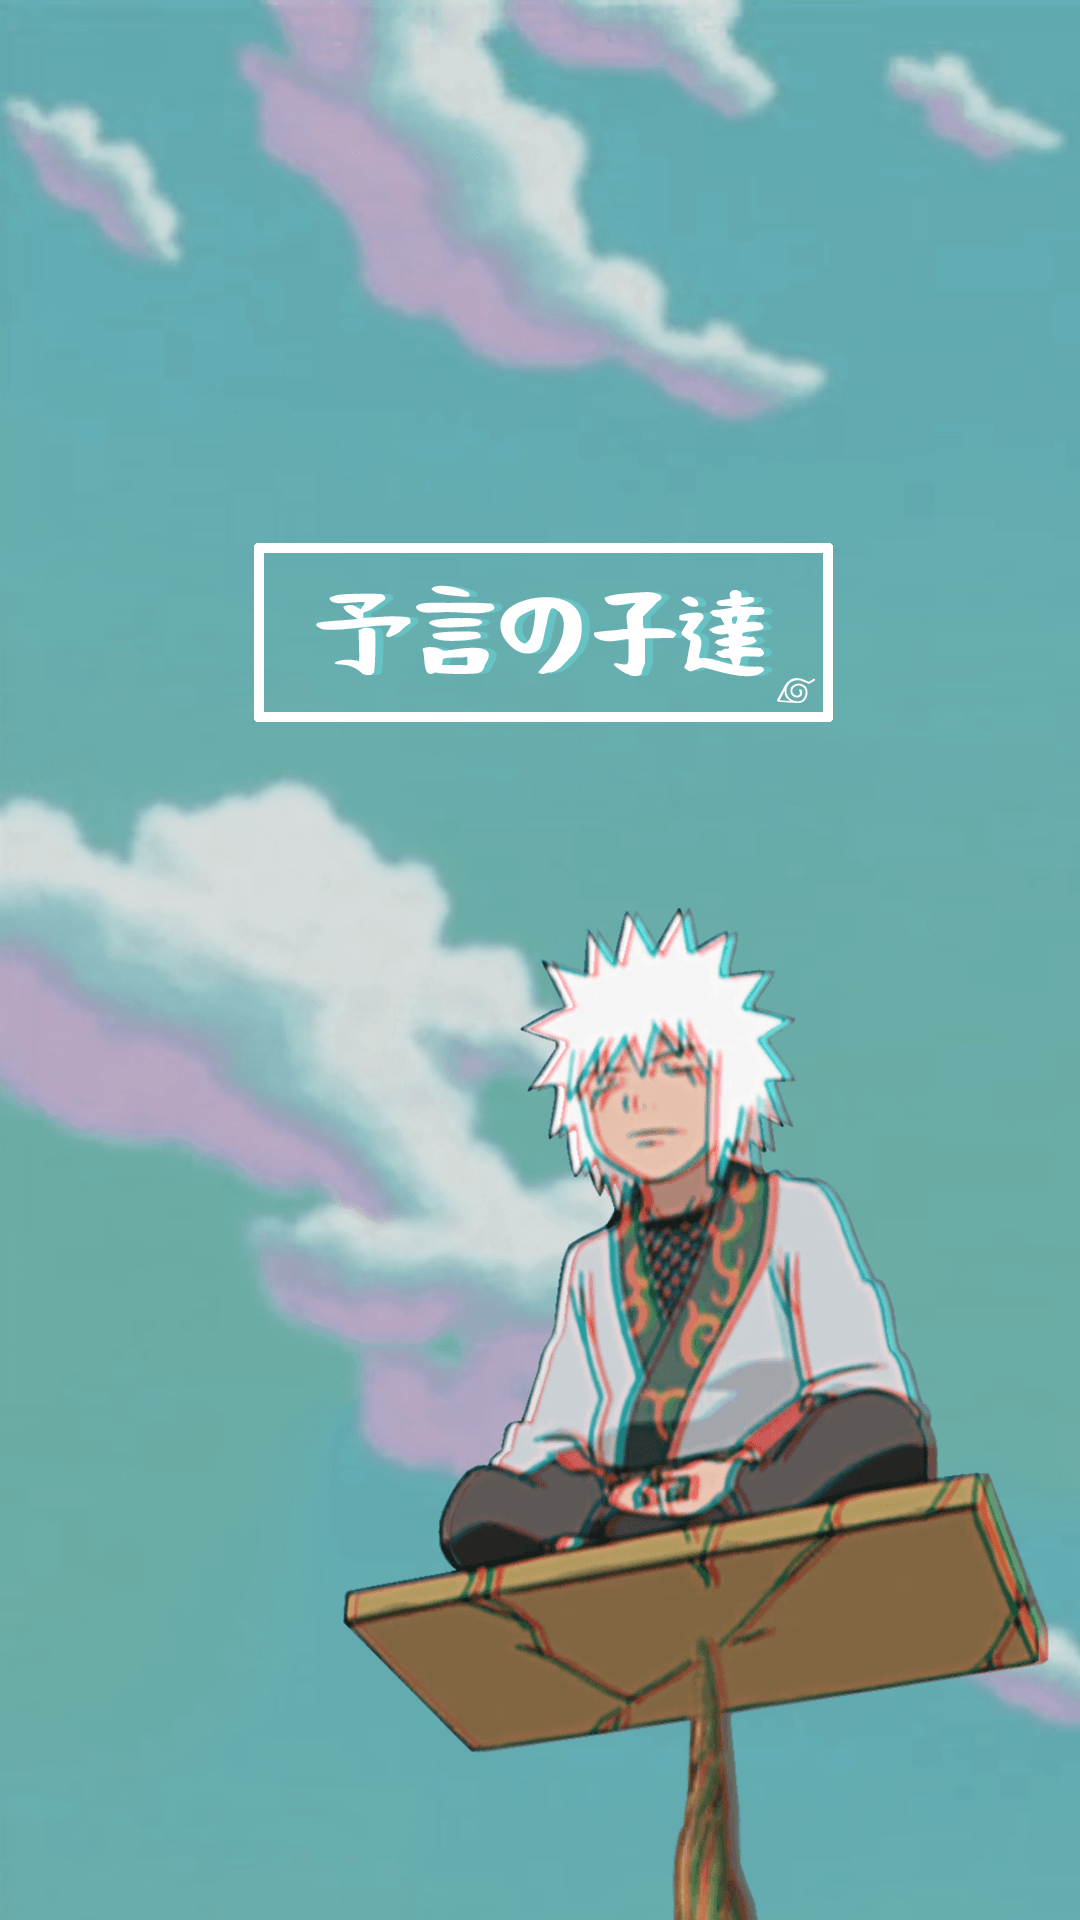 Download Naruto Wallpapers Hd Resolution For Iphone Wallpapers